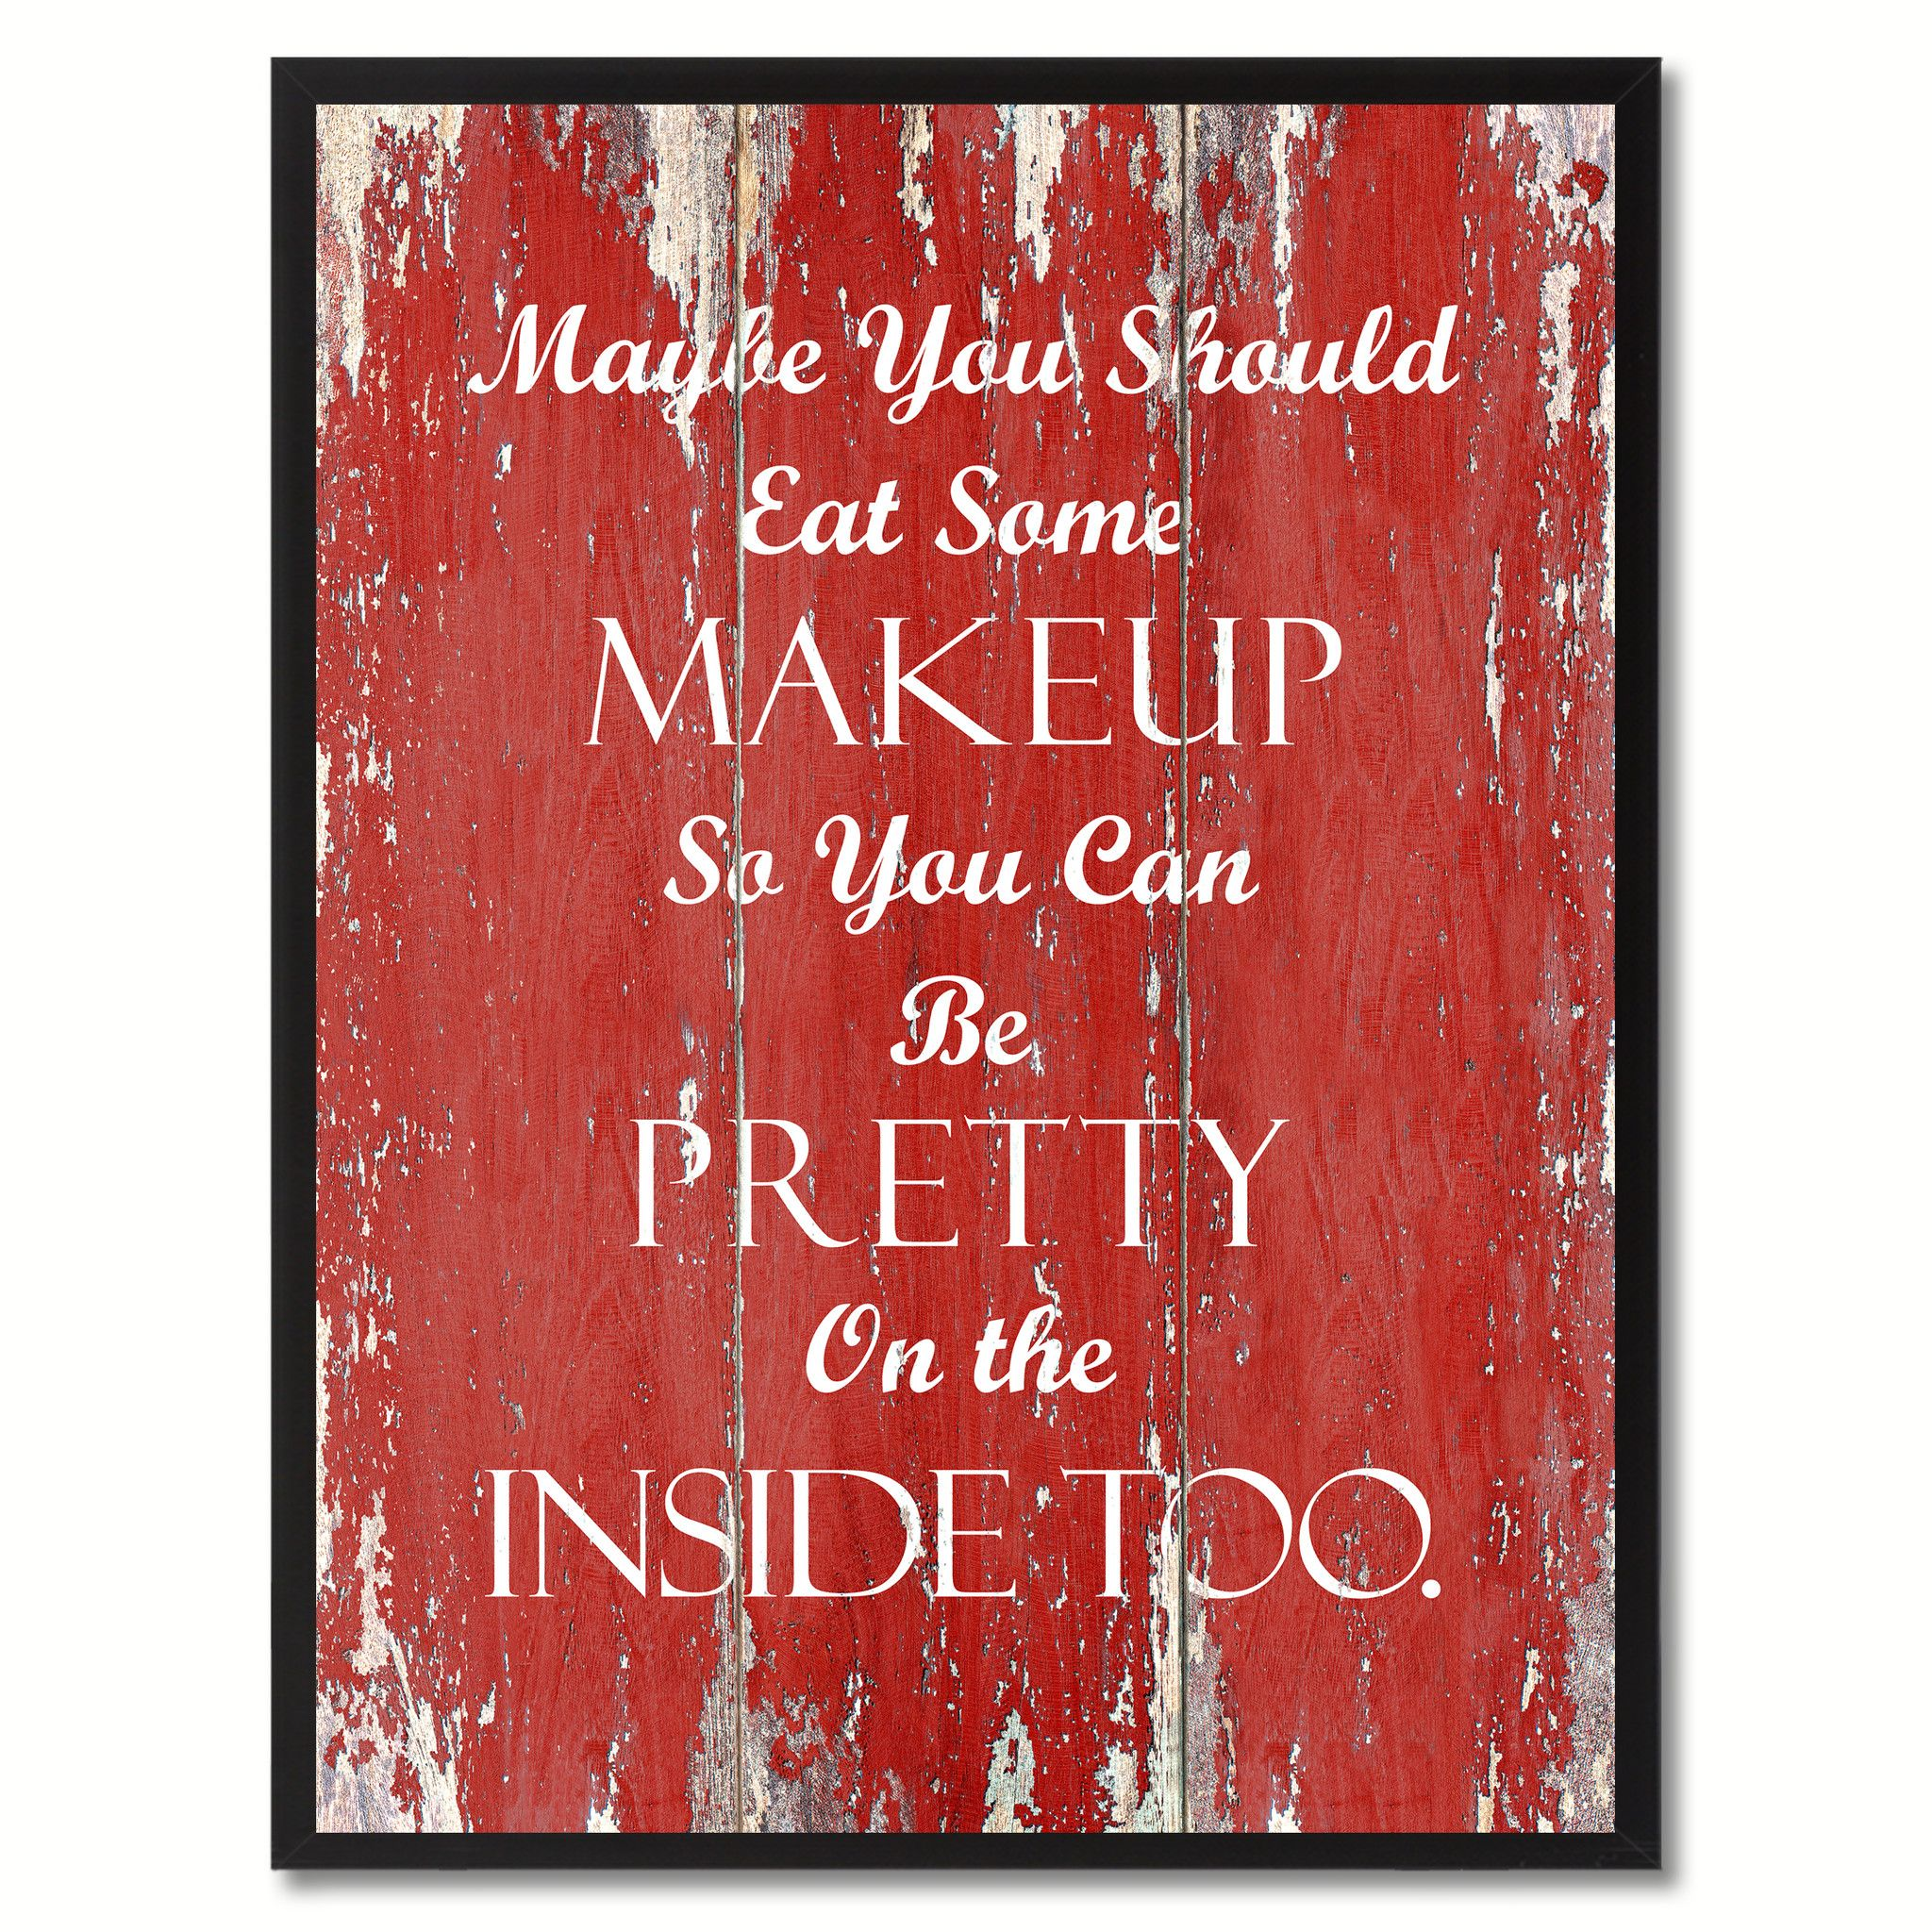 Maybe You Should Eat Some Makeup Inspirational Quote Saying Gift Ideas Home  Décor Wall Art